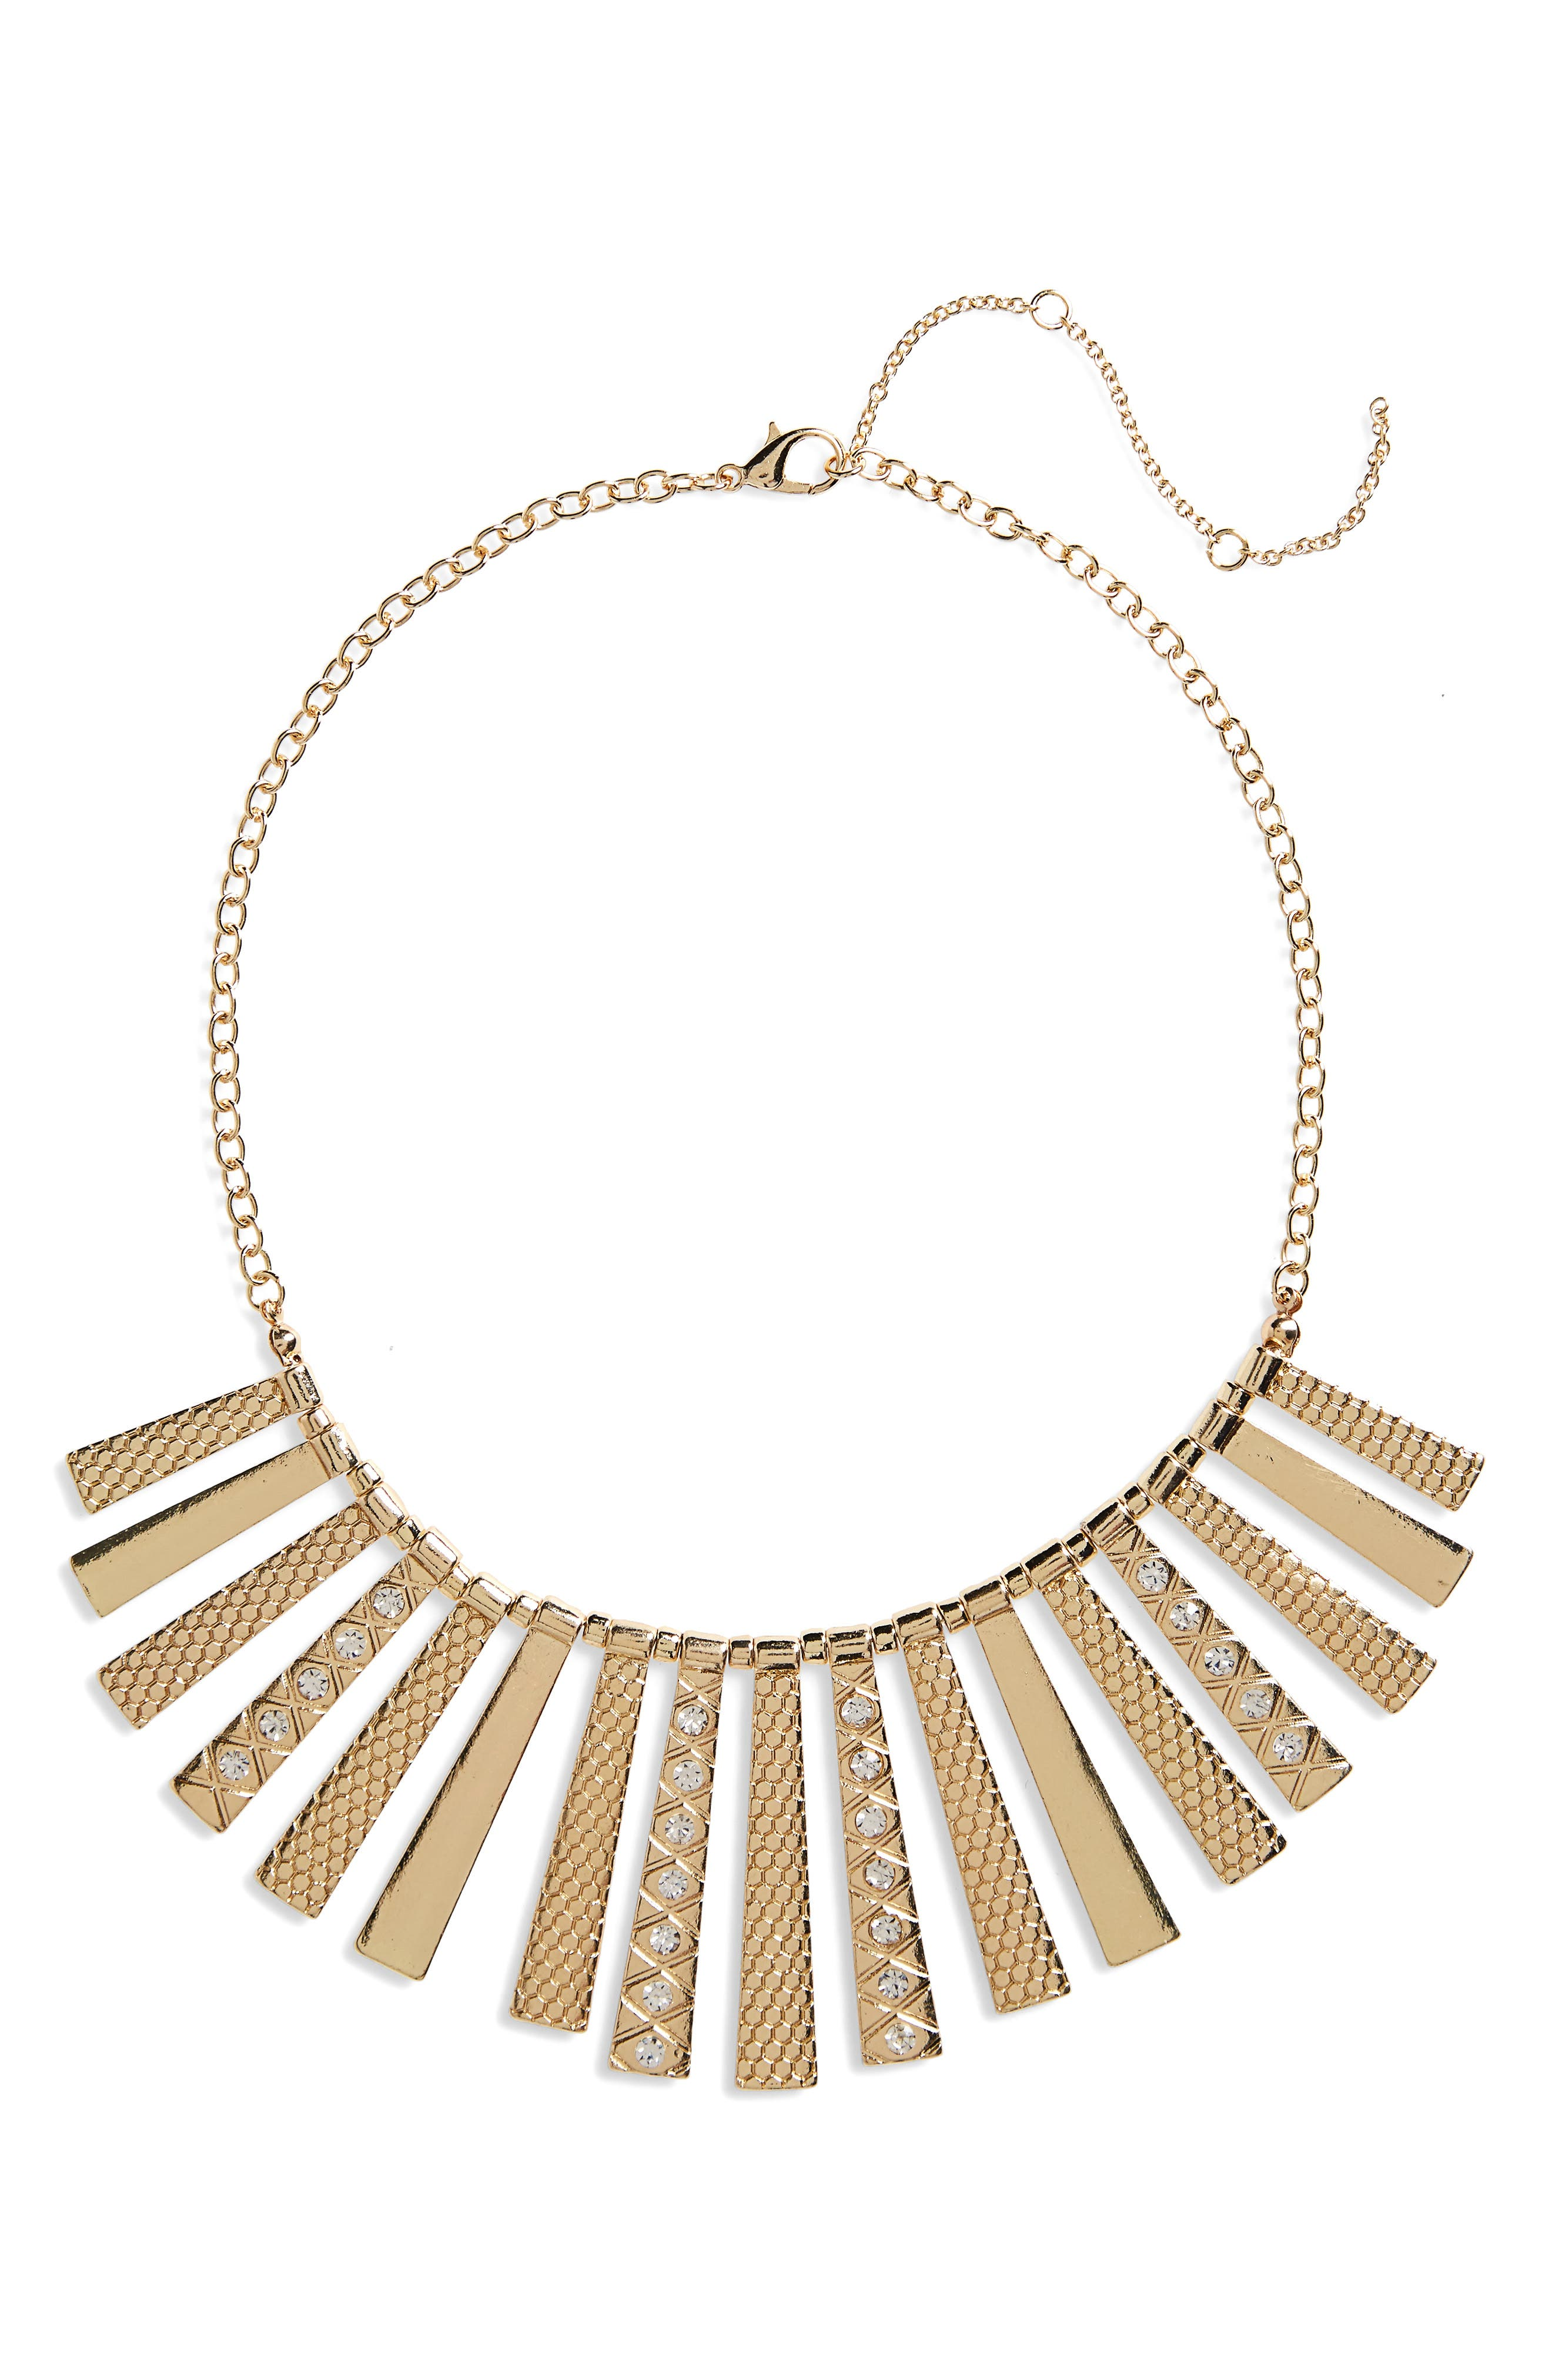 Textured Statement Necklace,                             Main thumbnail 1, color,                             710